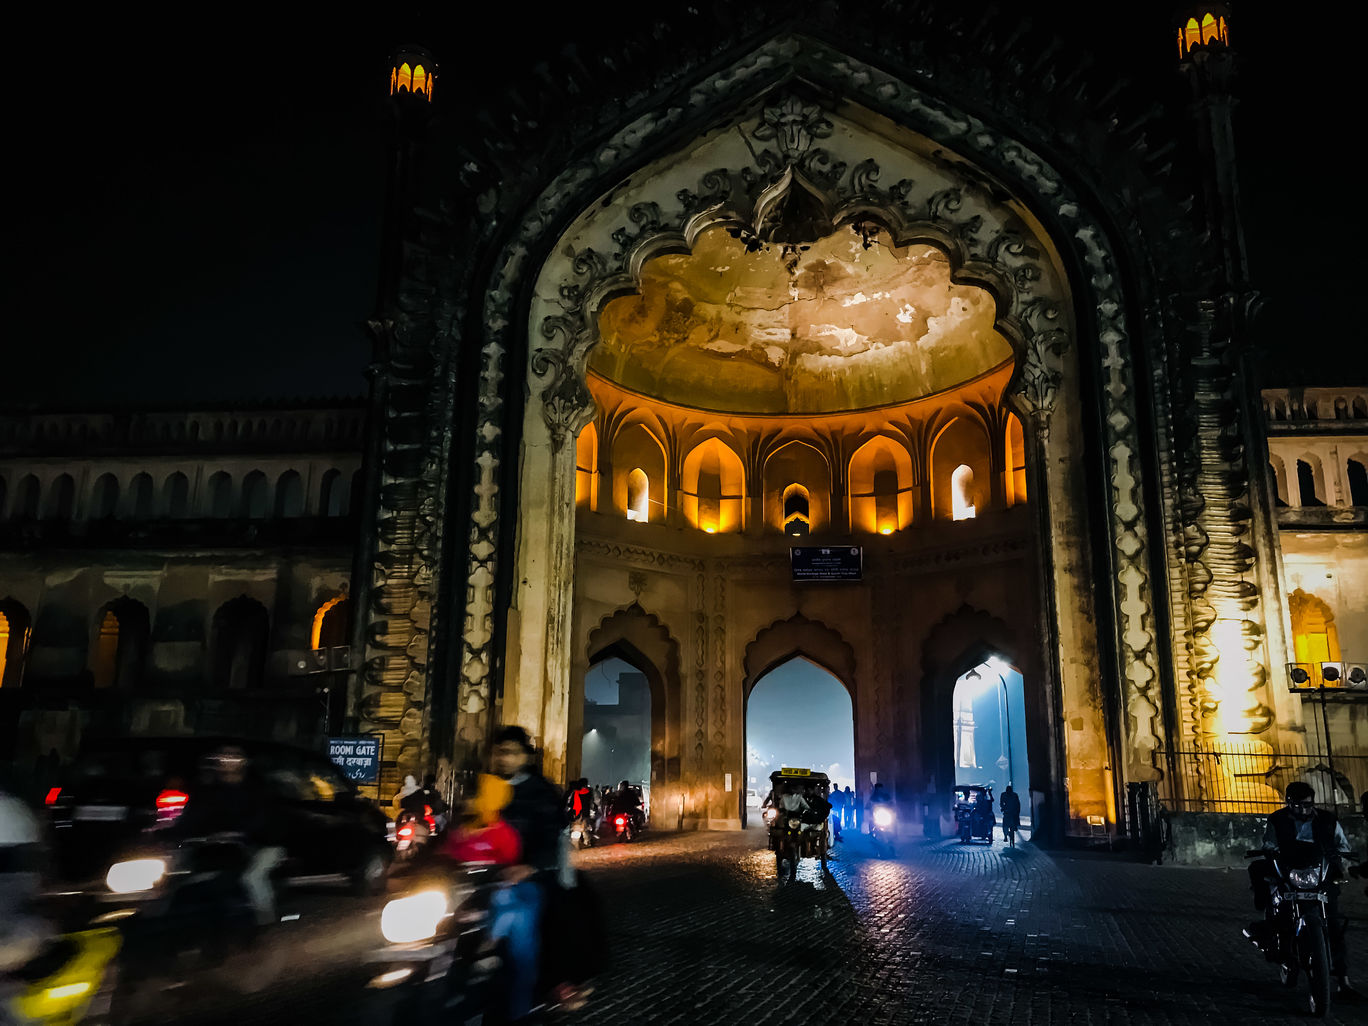 Photo of Lucknow By Harshit Jaiswal